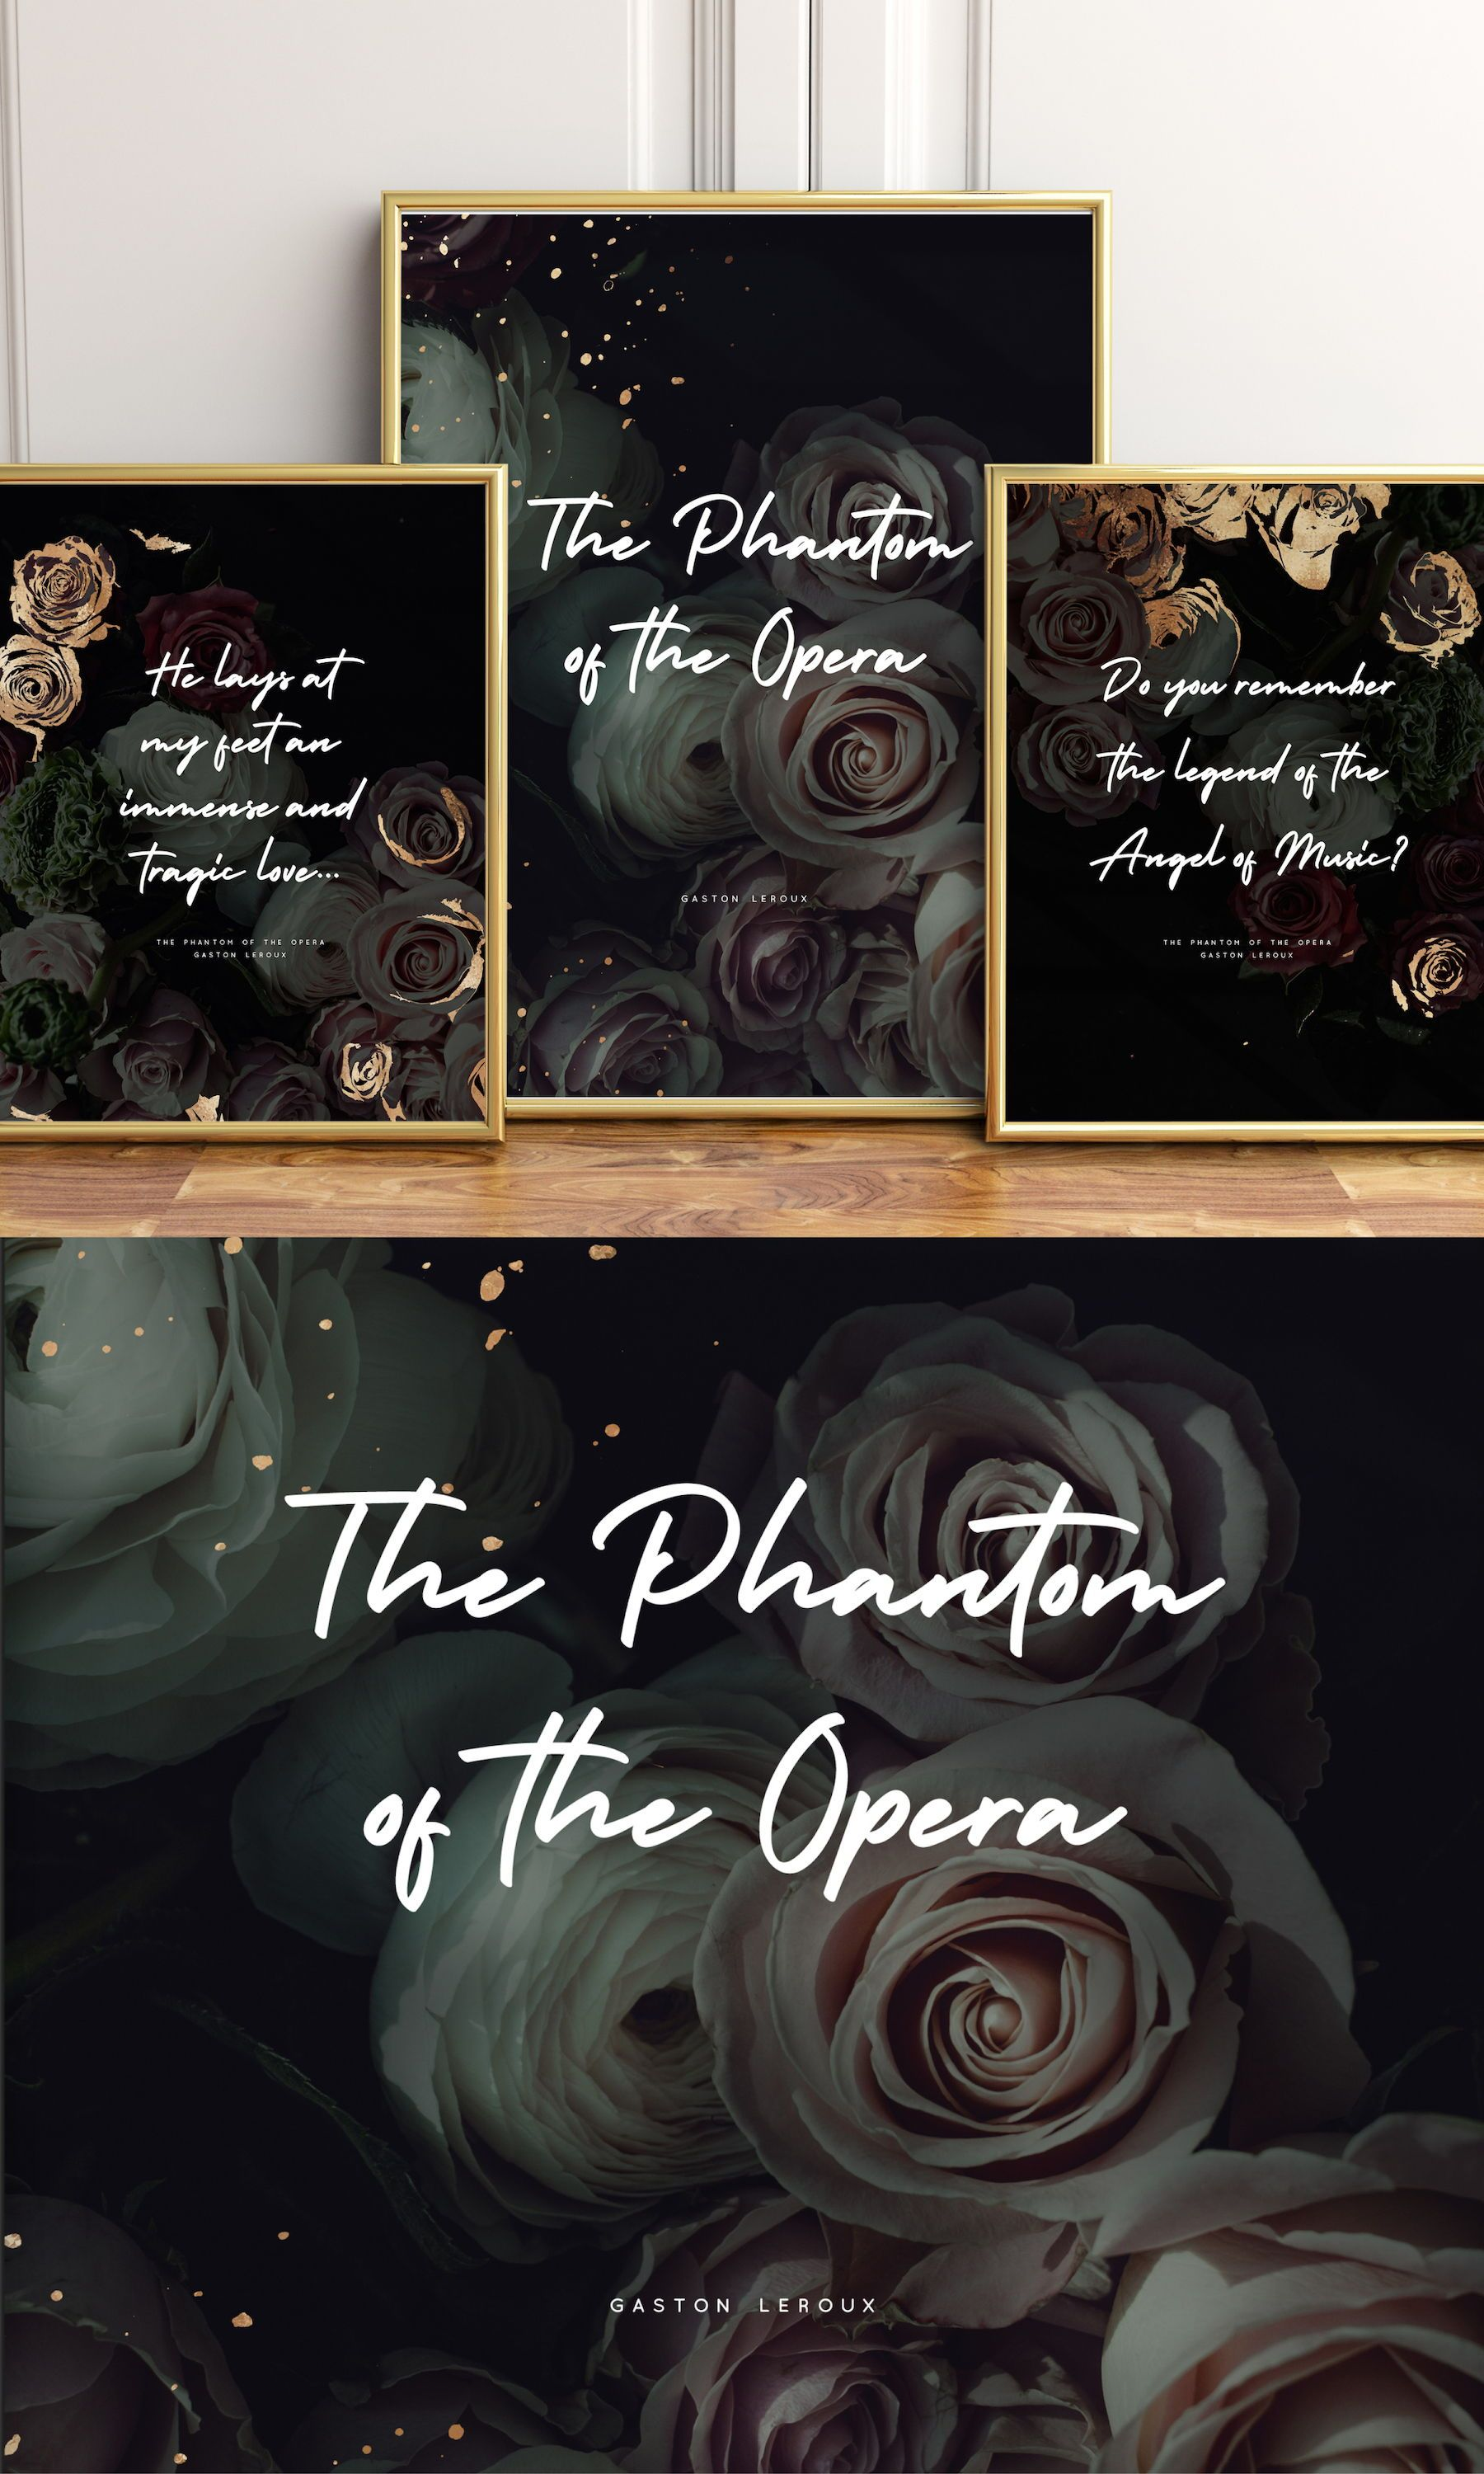 The Phantom Of The Opera Quotes Wall Art Set Of 3 This Poster Set Is A Must For All Lovers Of The Phantom Literary Posters Wall Art Quotes Literature Posters